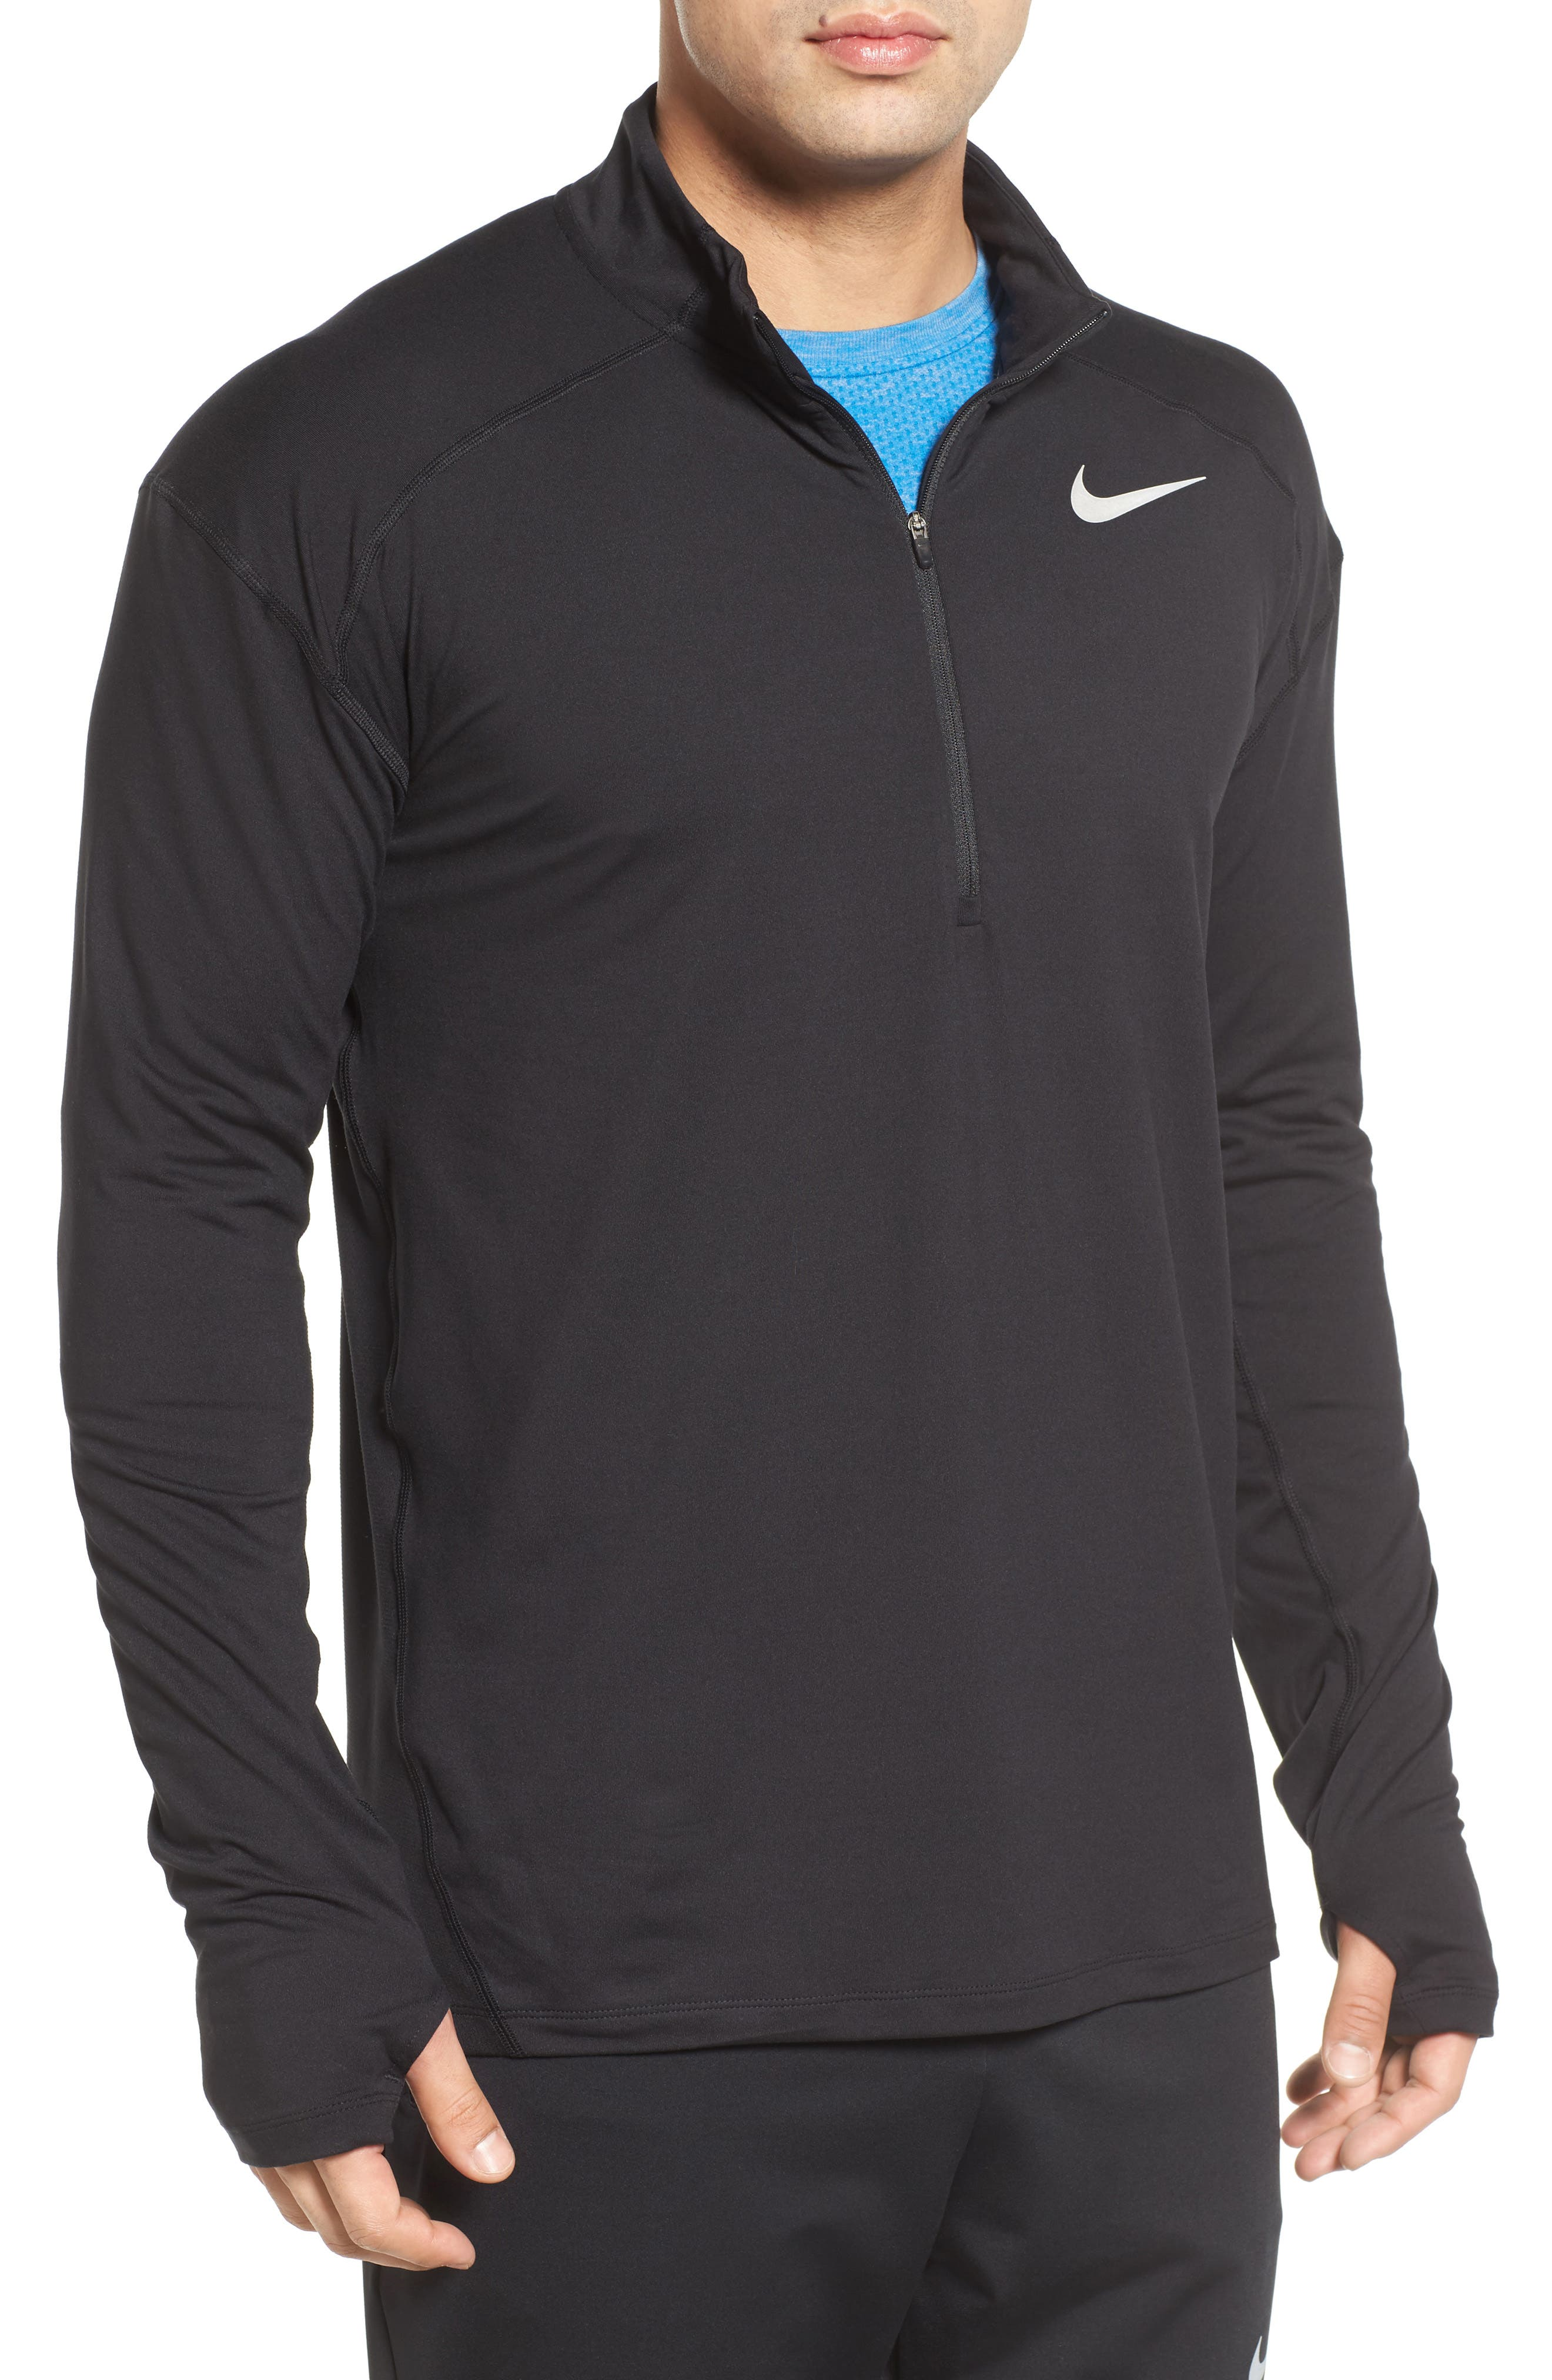 Dry Element Running Top,                         Main,                         color, Black